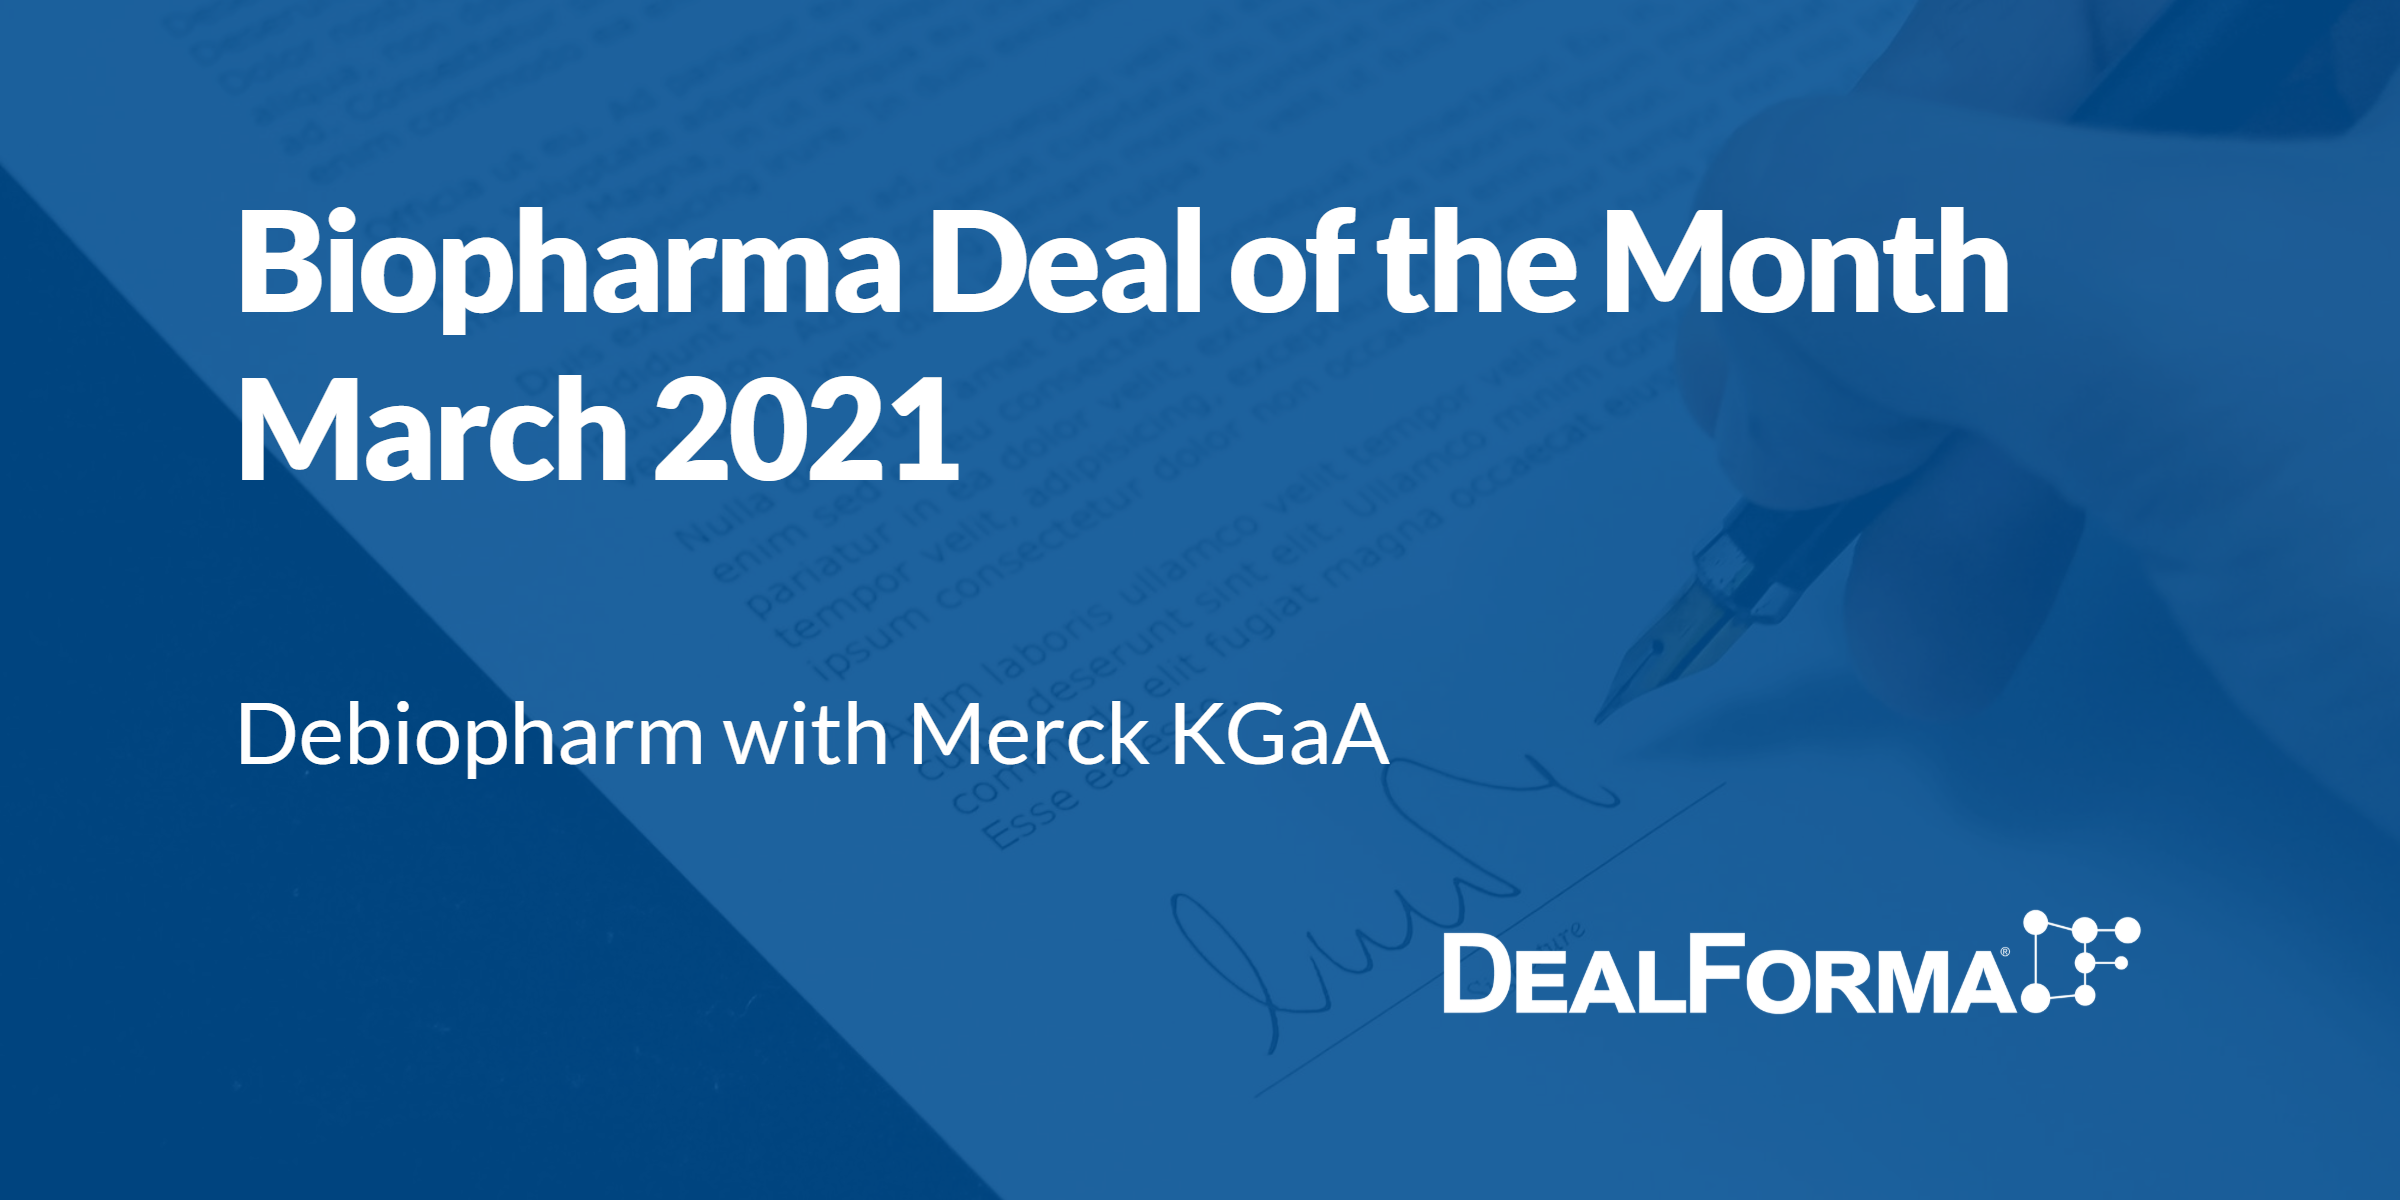 Top Biopharma Deal March 2021: Debiopharm – Merck KGaA for Xevinapant for head and neck cancer